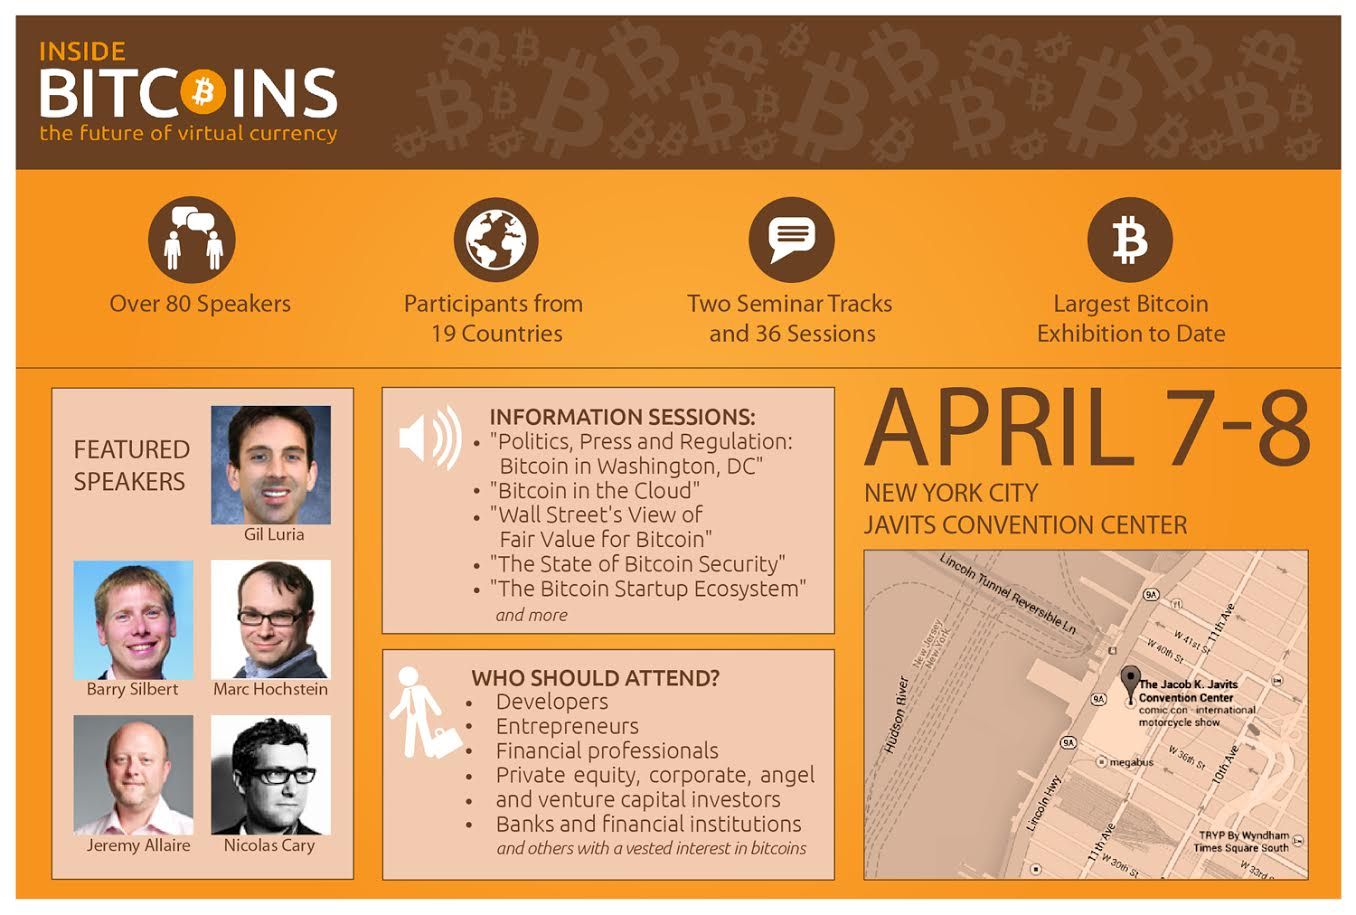 Inside Bitcoins Conference & Expo in New York City on April 7-8, 2014